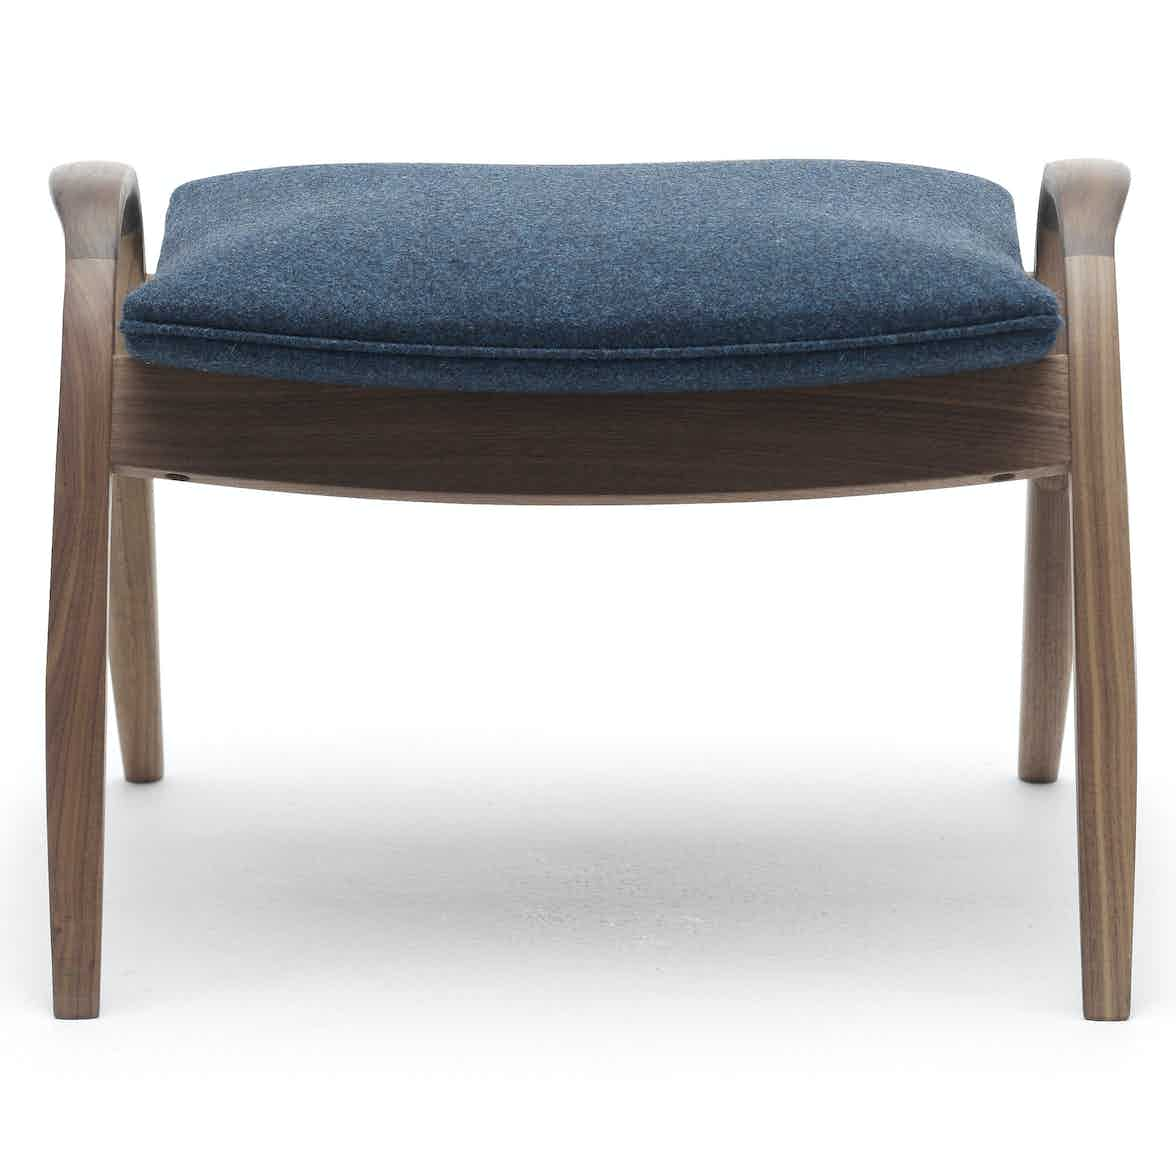 Carl-hansen-son-blue-side-fh430-haute-living